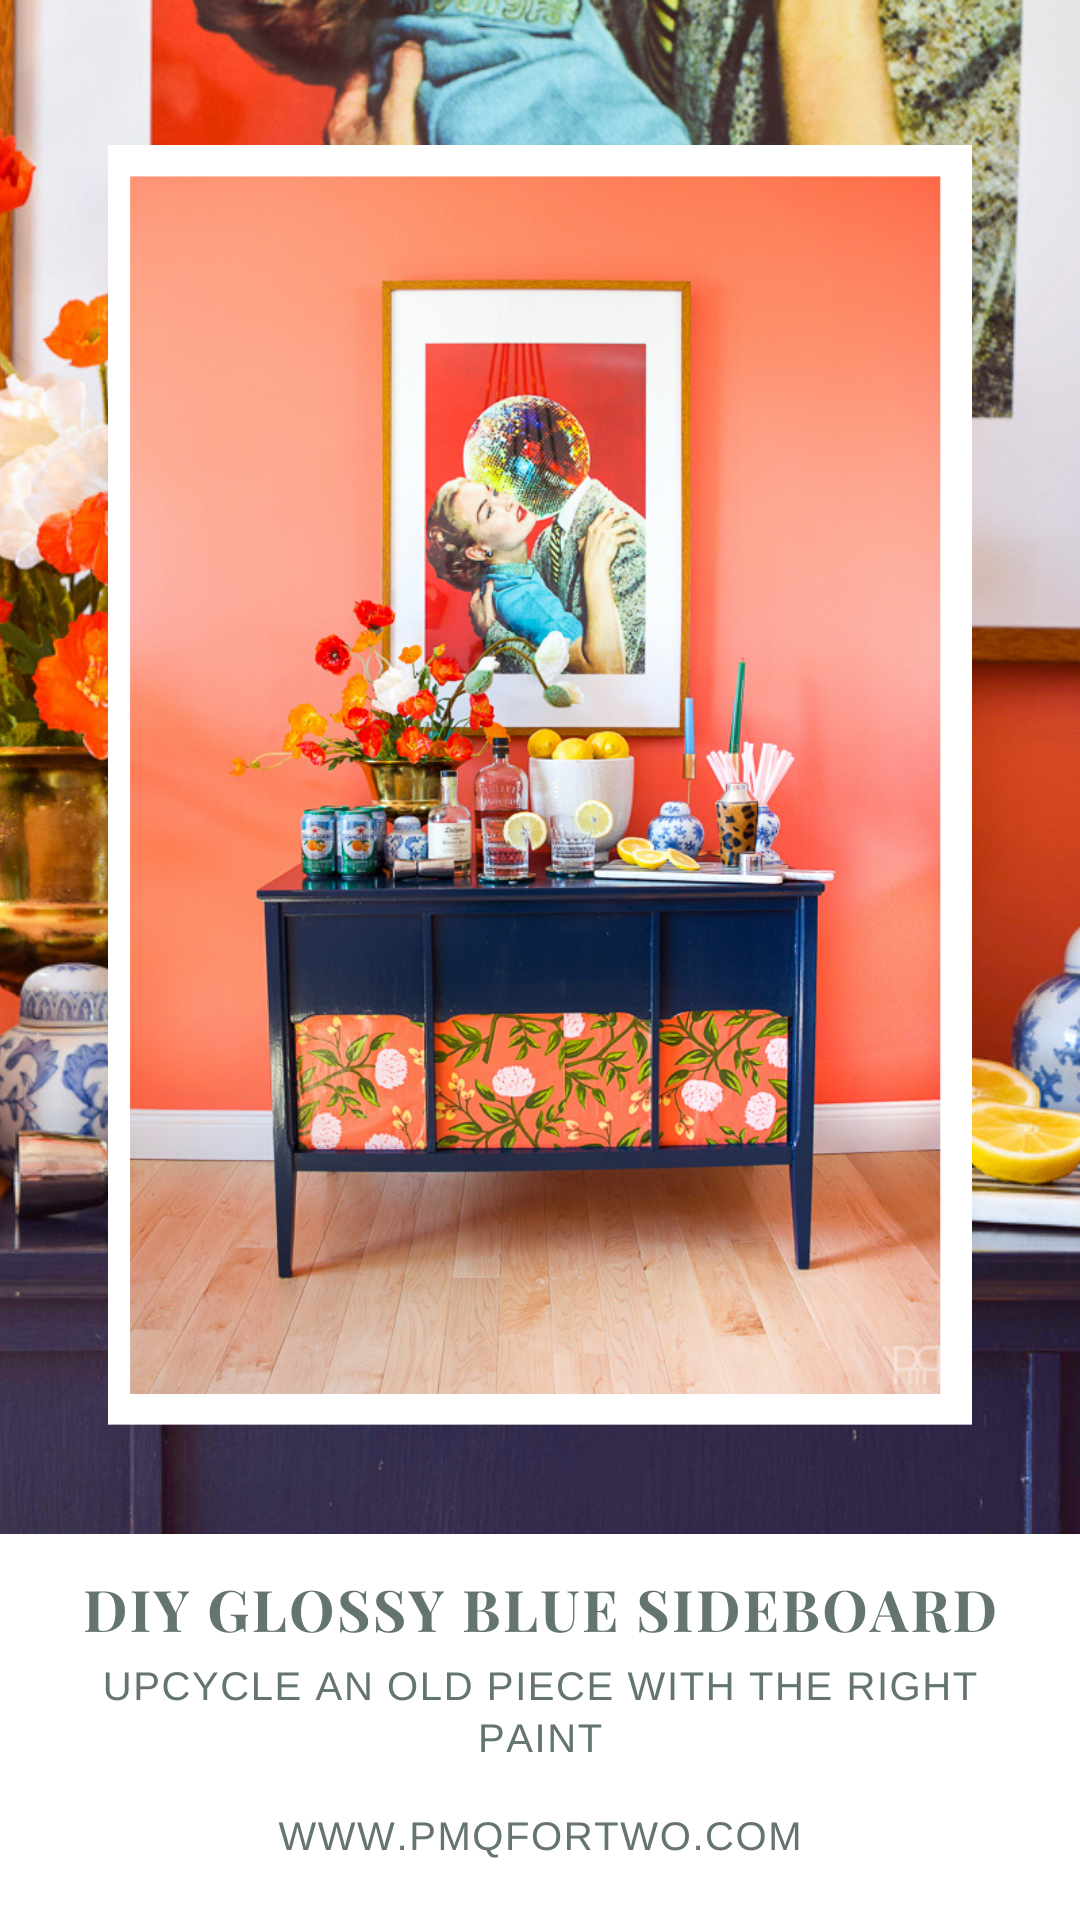 Inspired by Miles Redd's iconic style, my glossy blue sideboard makeover with FAT Paint is colourful, funky, and always eclectic.